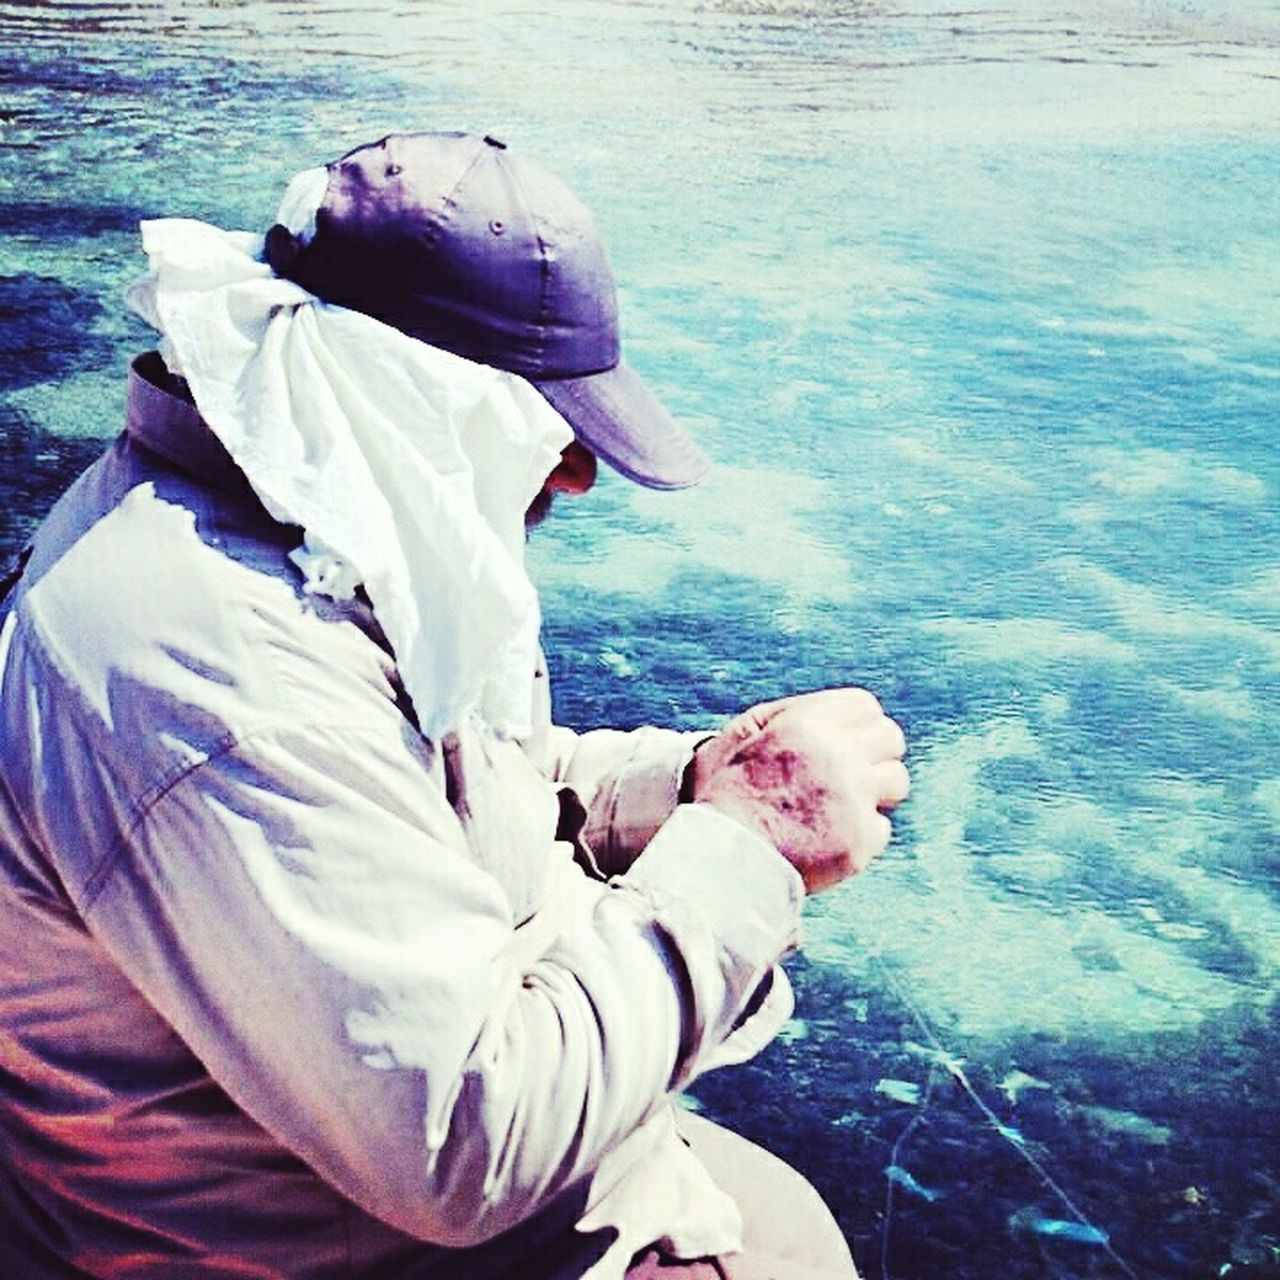 real people, sea, water, outdoors, one person, day, men, standing, nature, protective workwear, people